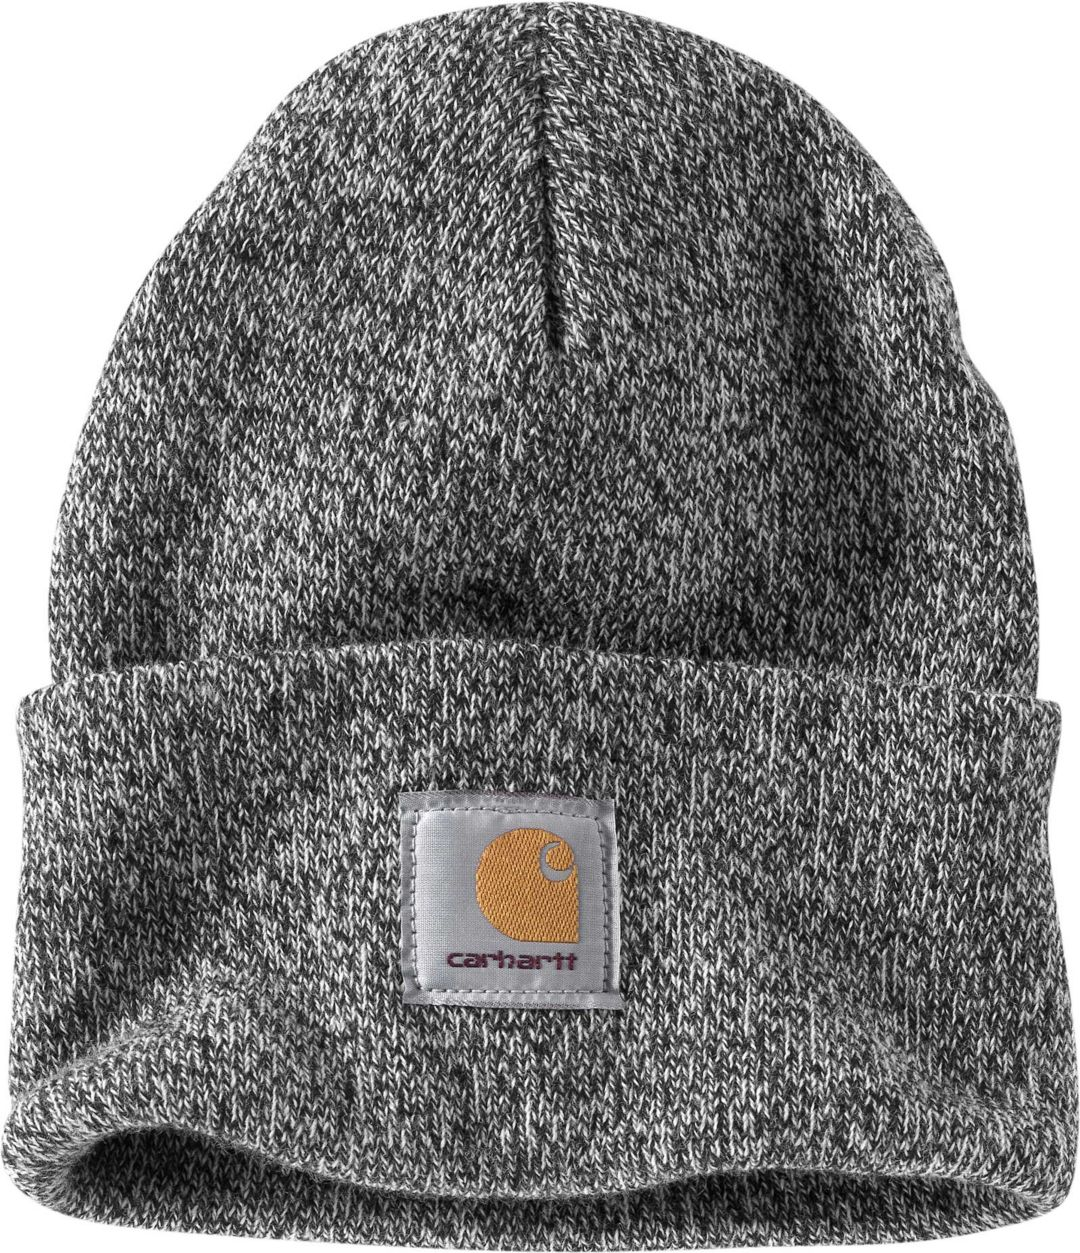 7af66fd5e582fe Carhartt Men's Knit Watch Cap | DICK'S Sporting Goods